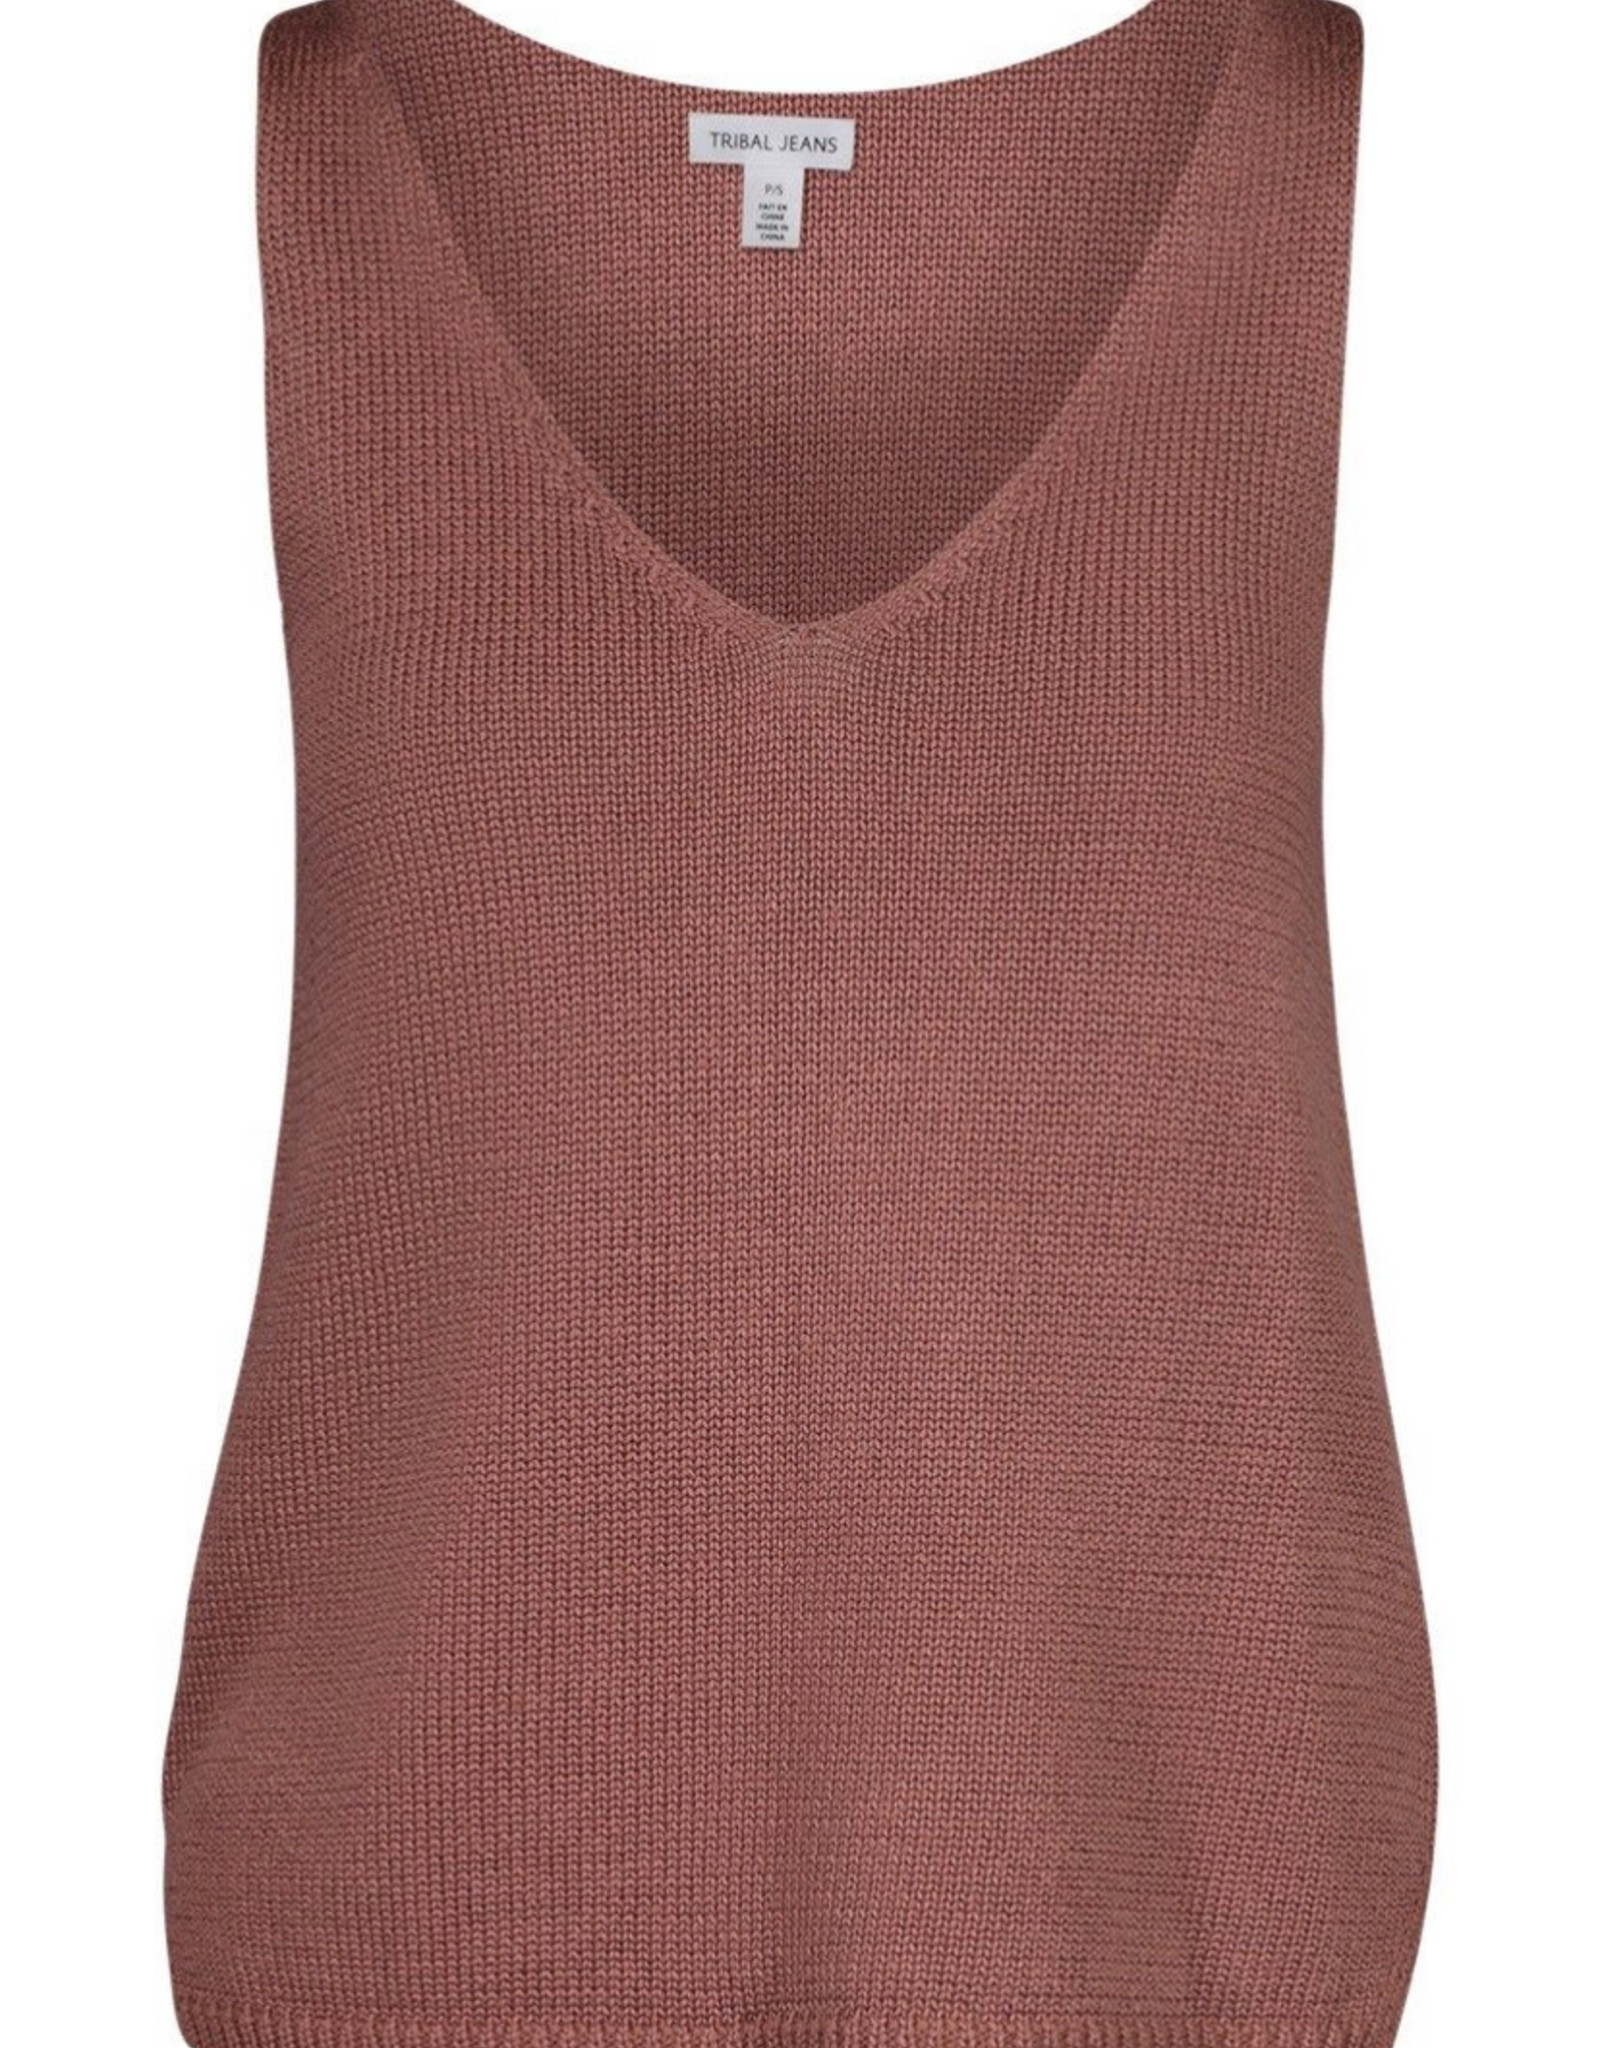 Sweater cami Gazelle